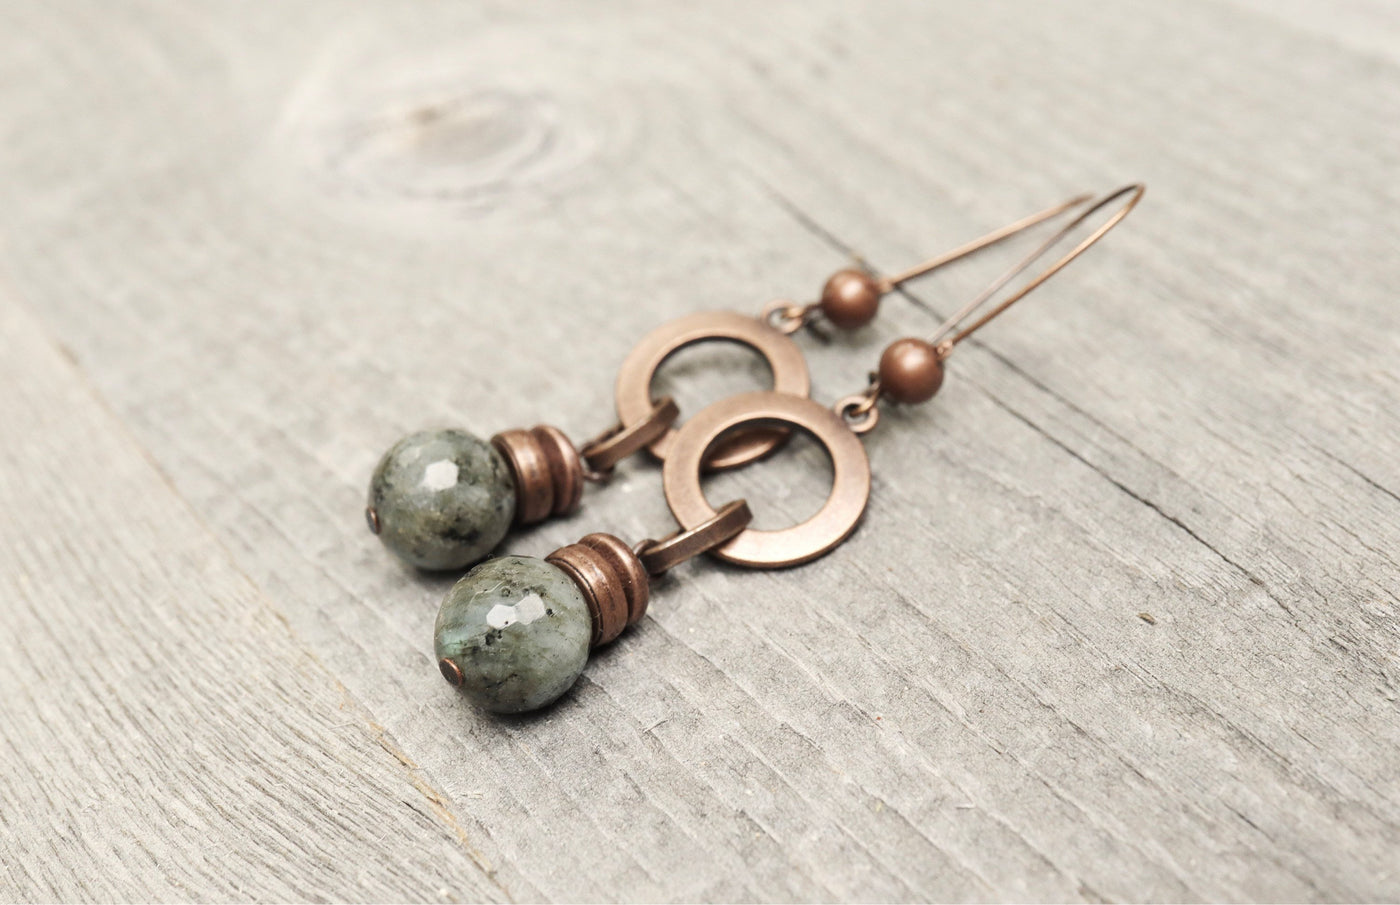 Labradorite Copper Gray Natural Stone Loop Ring Boho Gypsy Earrings - Simple Earthy Handmade Circle Metal Round Bohemian Rustic Jewelry